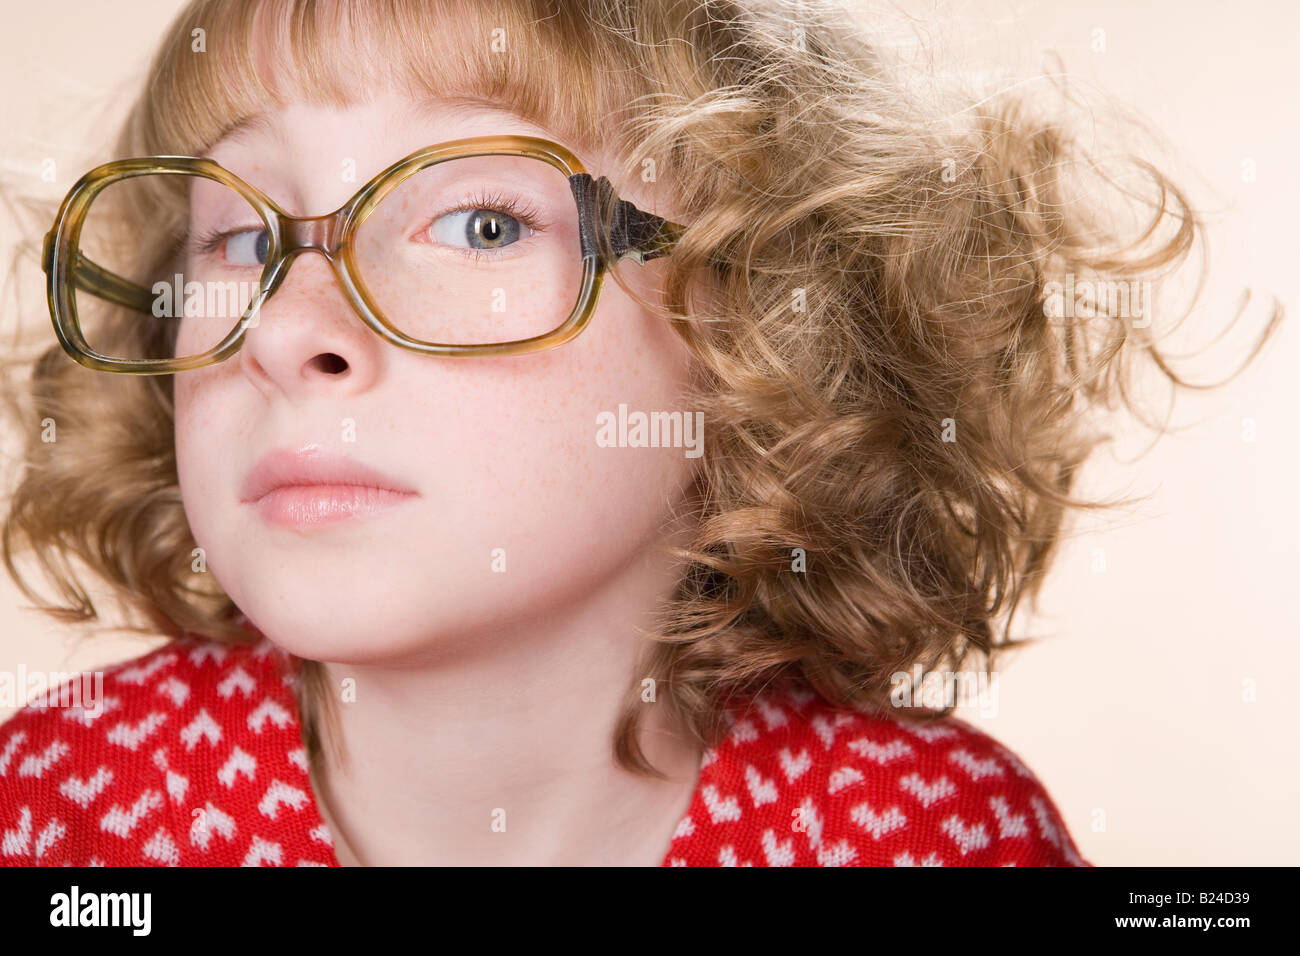 Portrait of a geeky girl - Stock Image